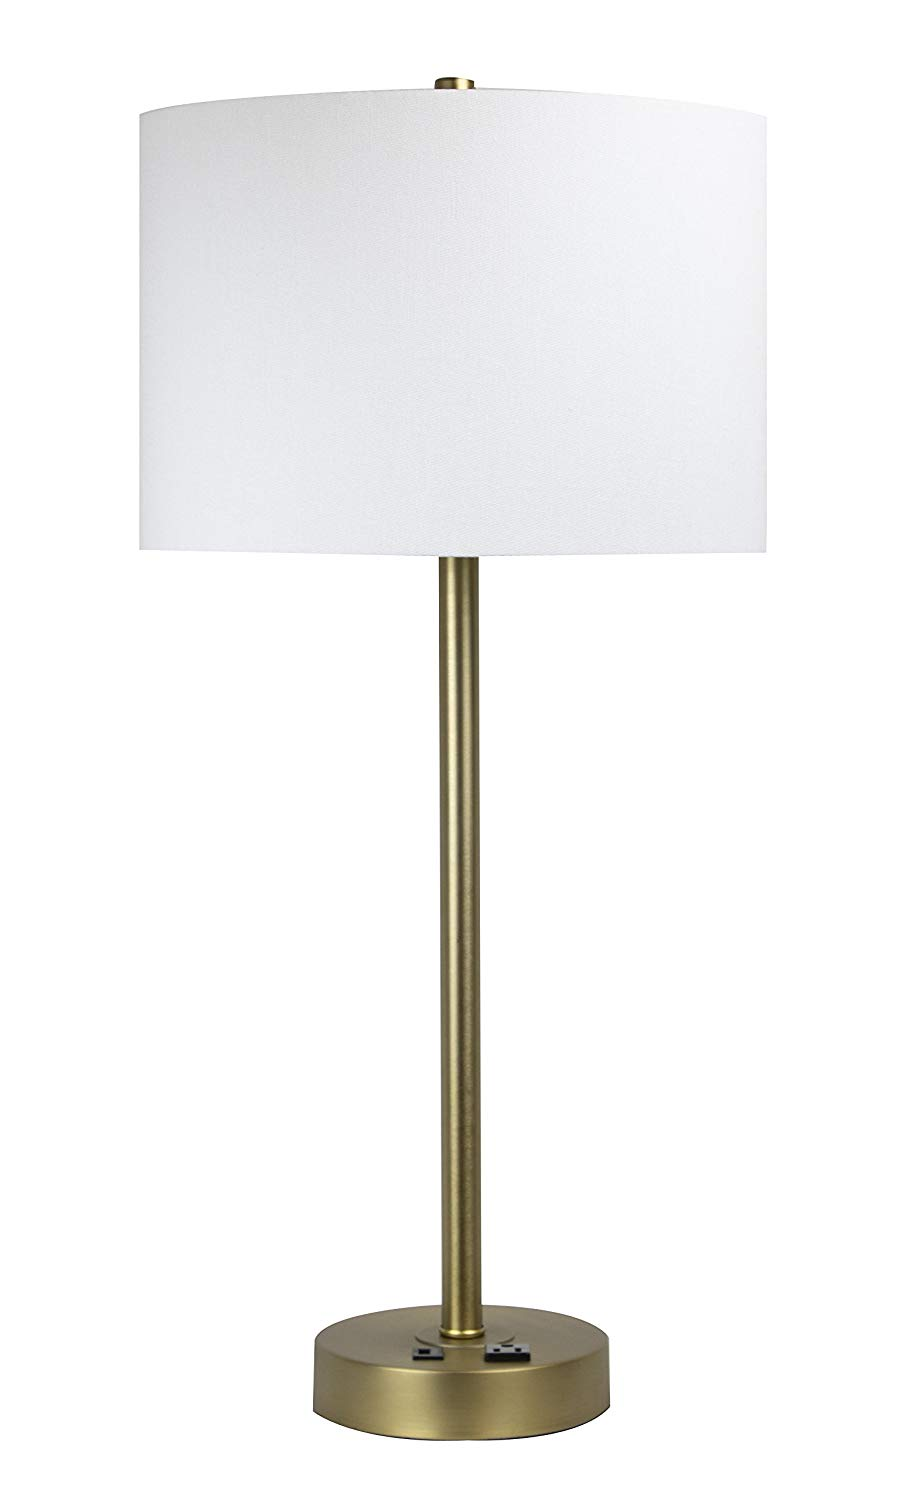 table lamp with usb port and power find heyburn brushed steel accent grandview gallery plated gold off white shade contemporary coffee tables toronto ikea garden shed storage